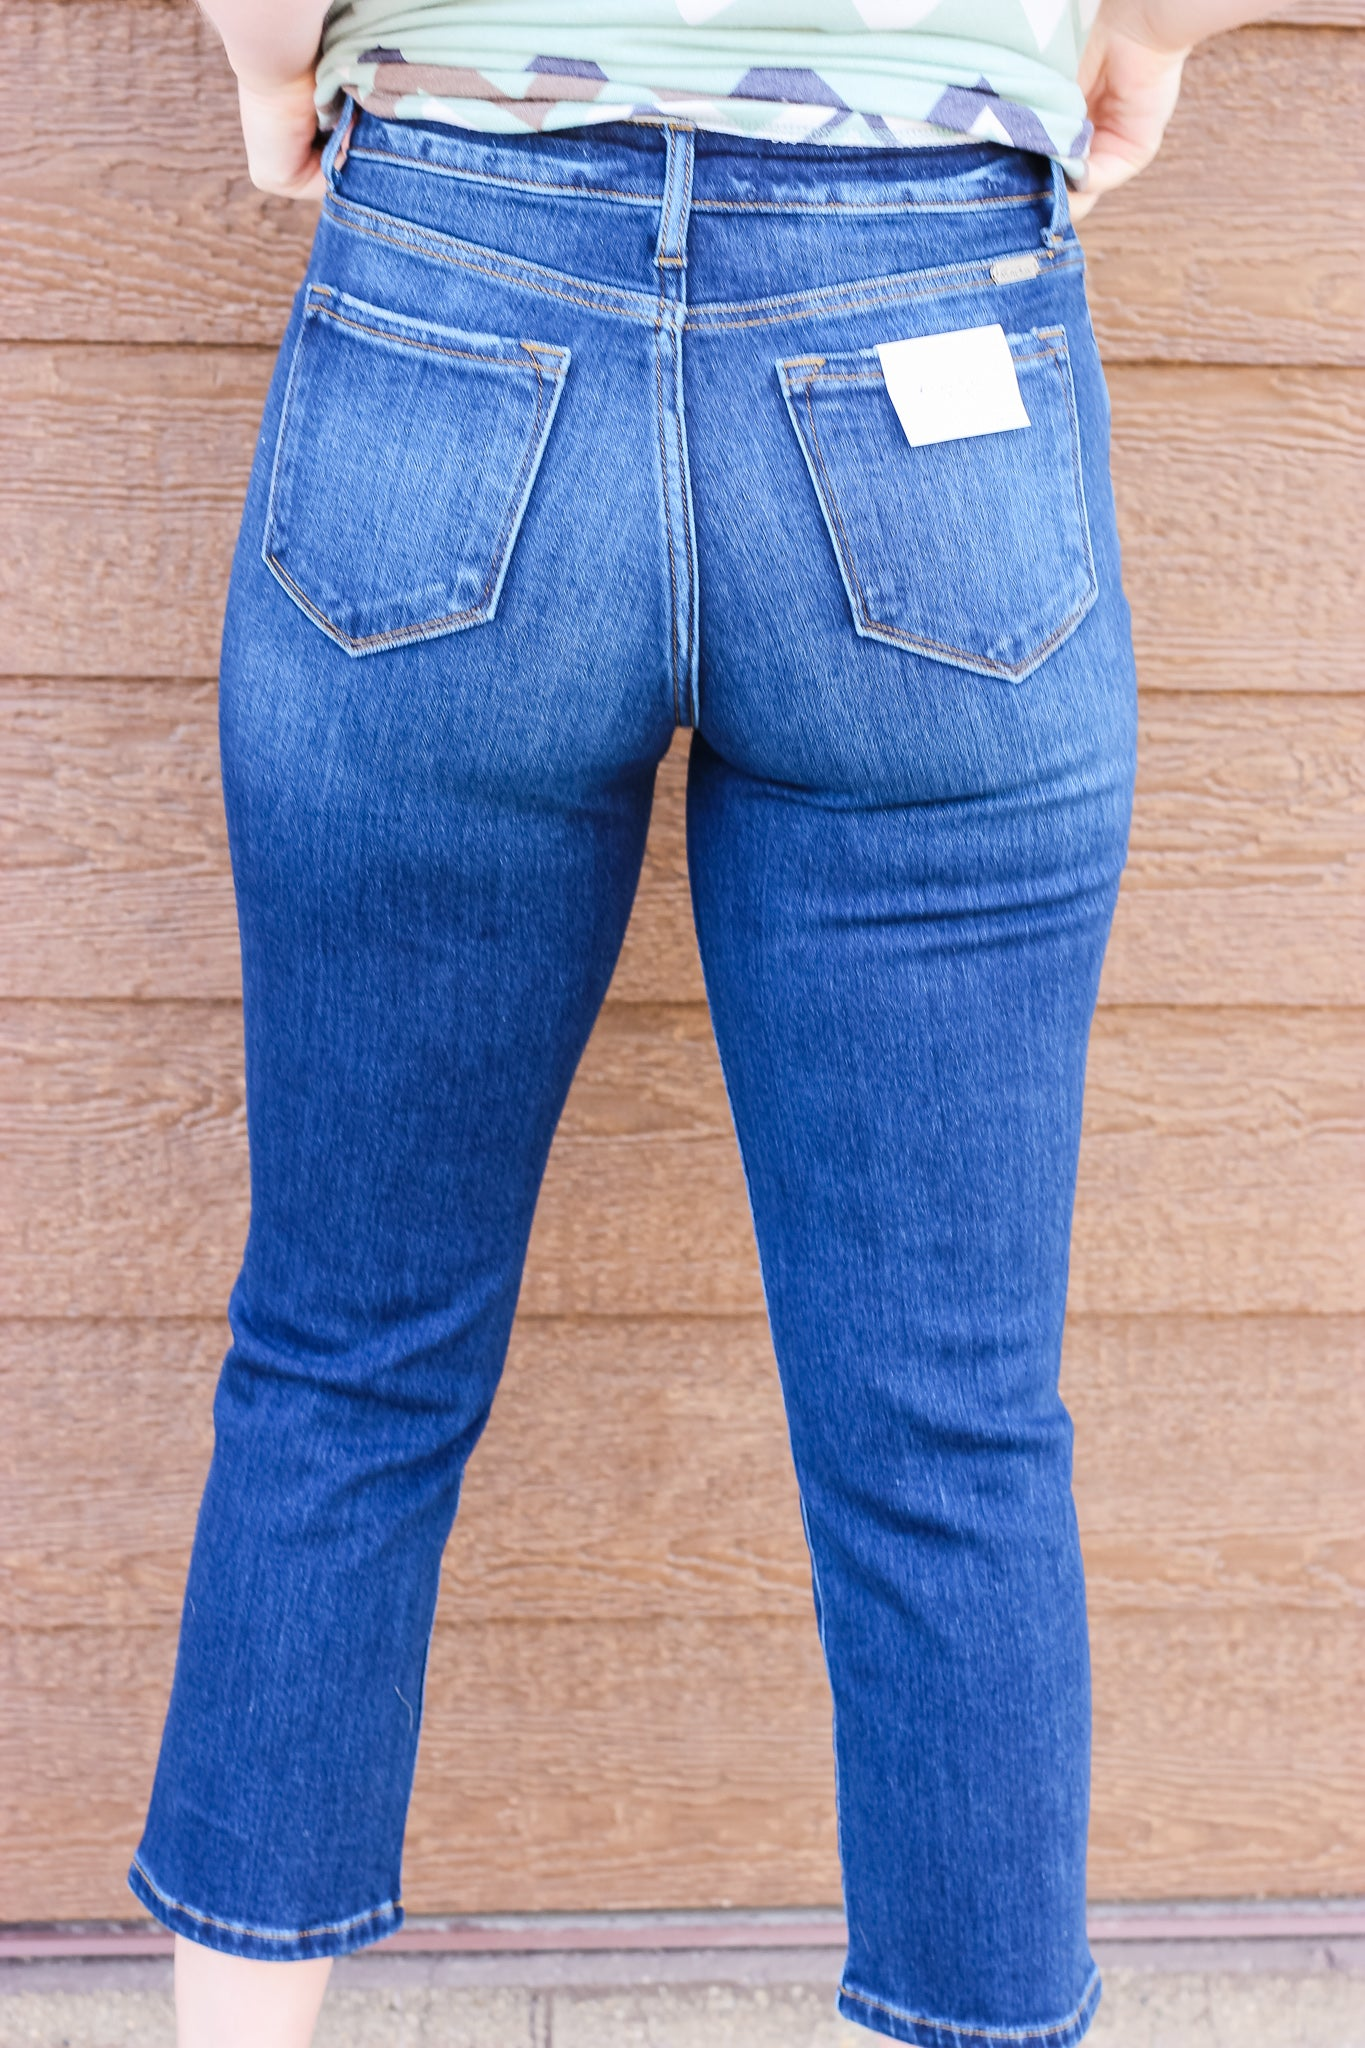 KanCan High Rise Skinny Jeans 3 - JQ Clothing Co. - Oakes ND